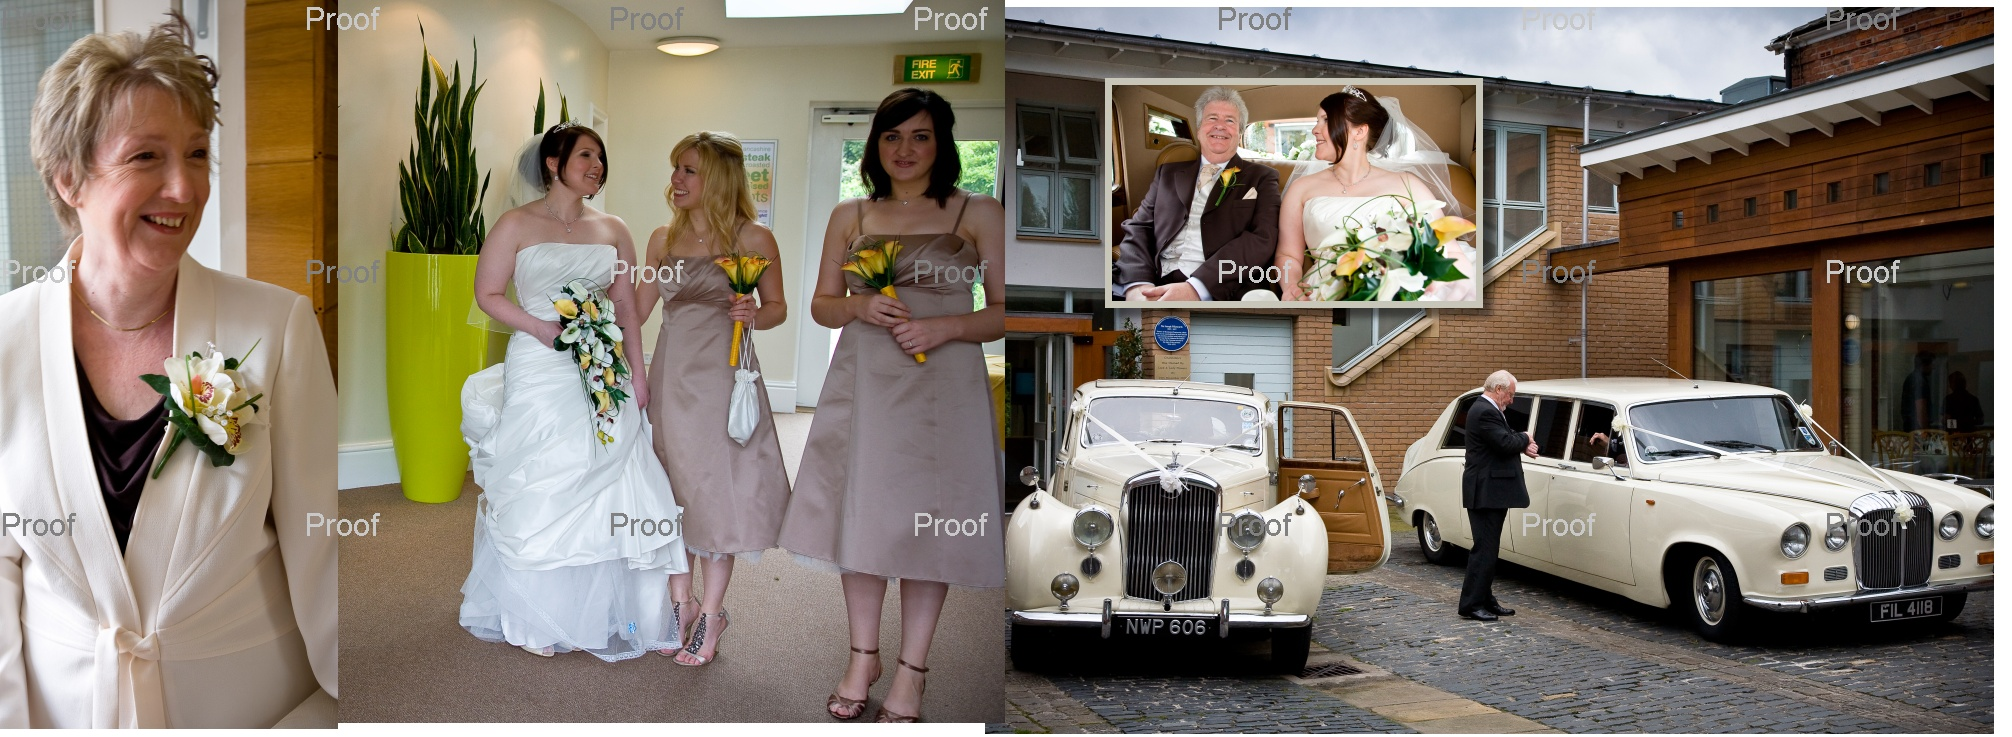 pages 14-15 of wedding storybook design with bride and bridesmaids as they set off in wedding cars